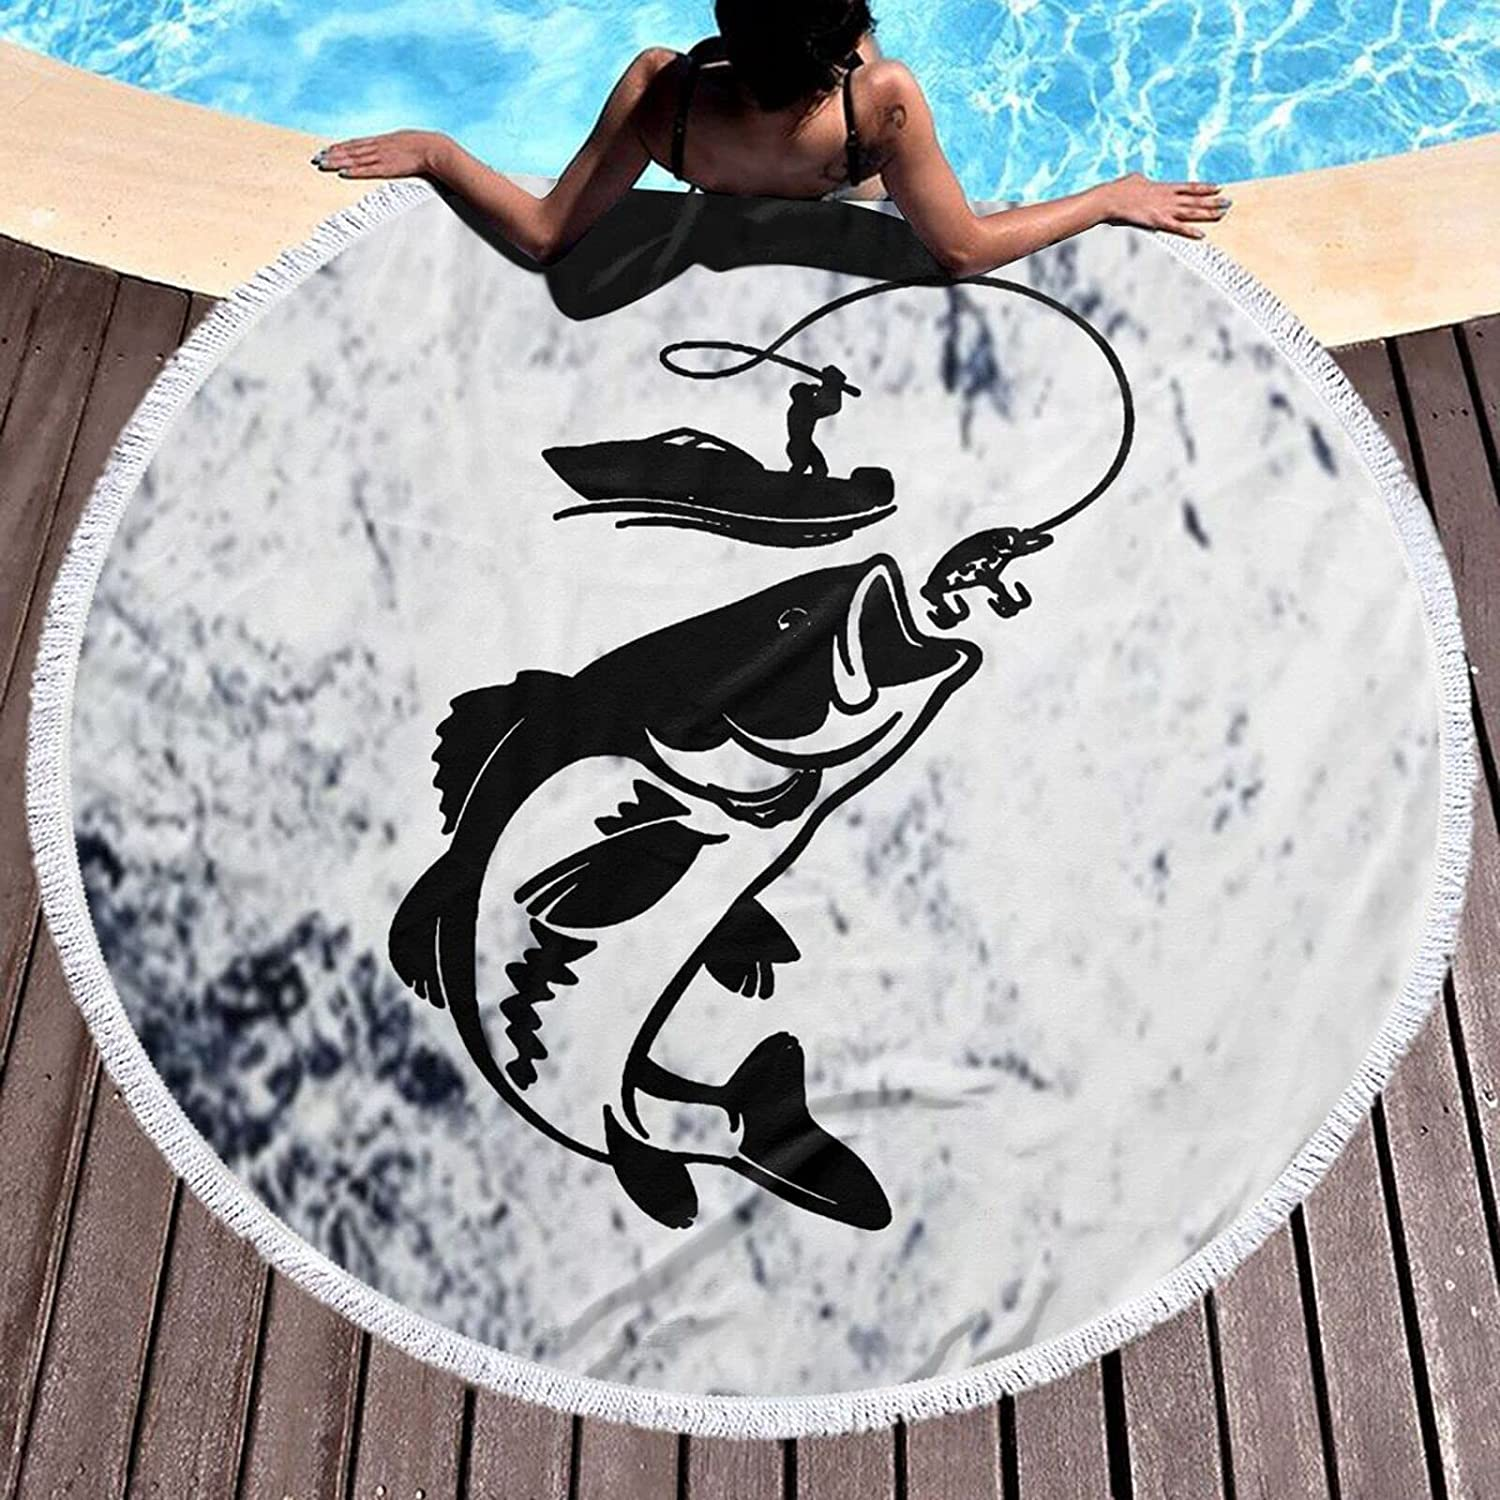 Fishing Recommended Fisherman Fish Boat Personalized In favorite 59 Beach Towel Round